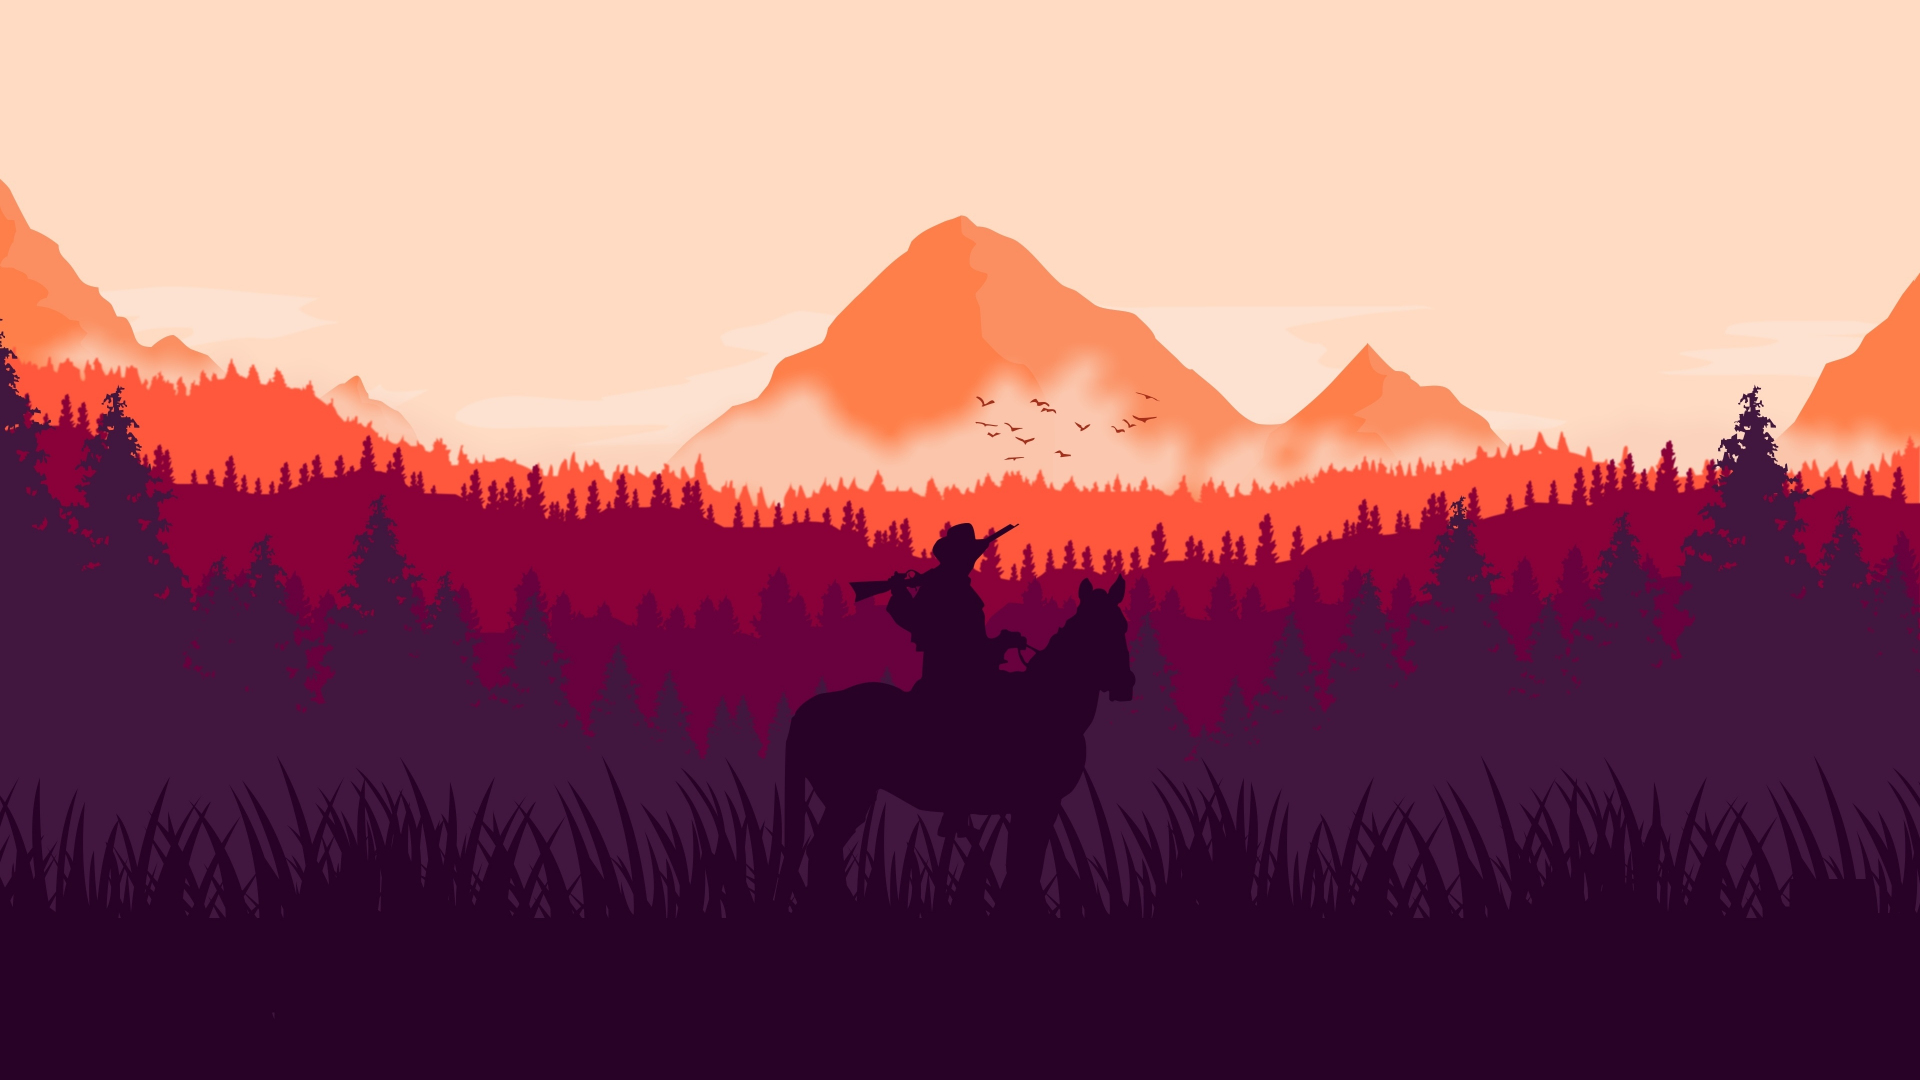 Galaxy S4 Fall Wallpaper Download 1920x1080 Wallpaper Red Dead Redemption 2 Horse